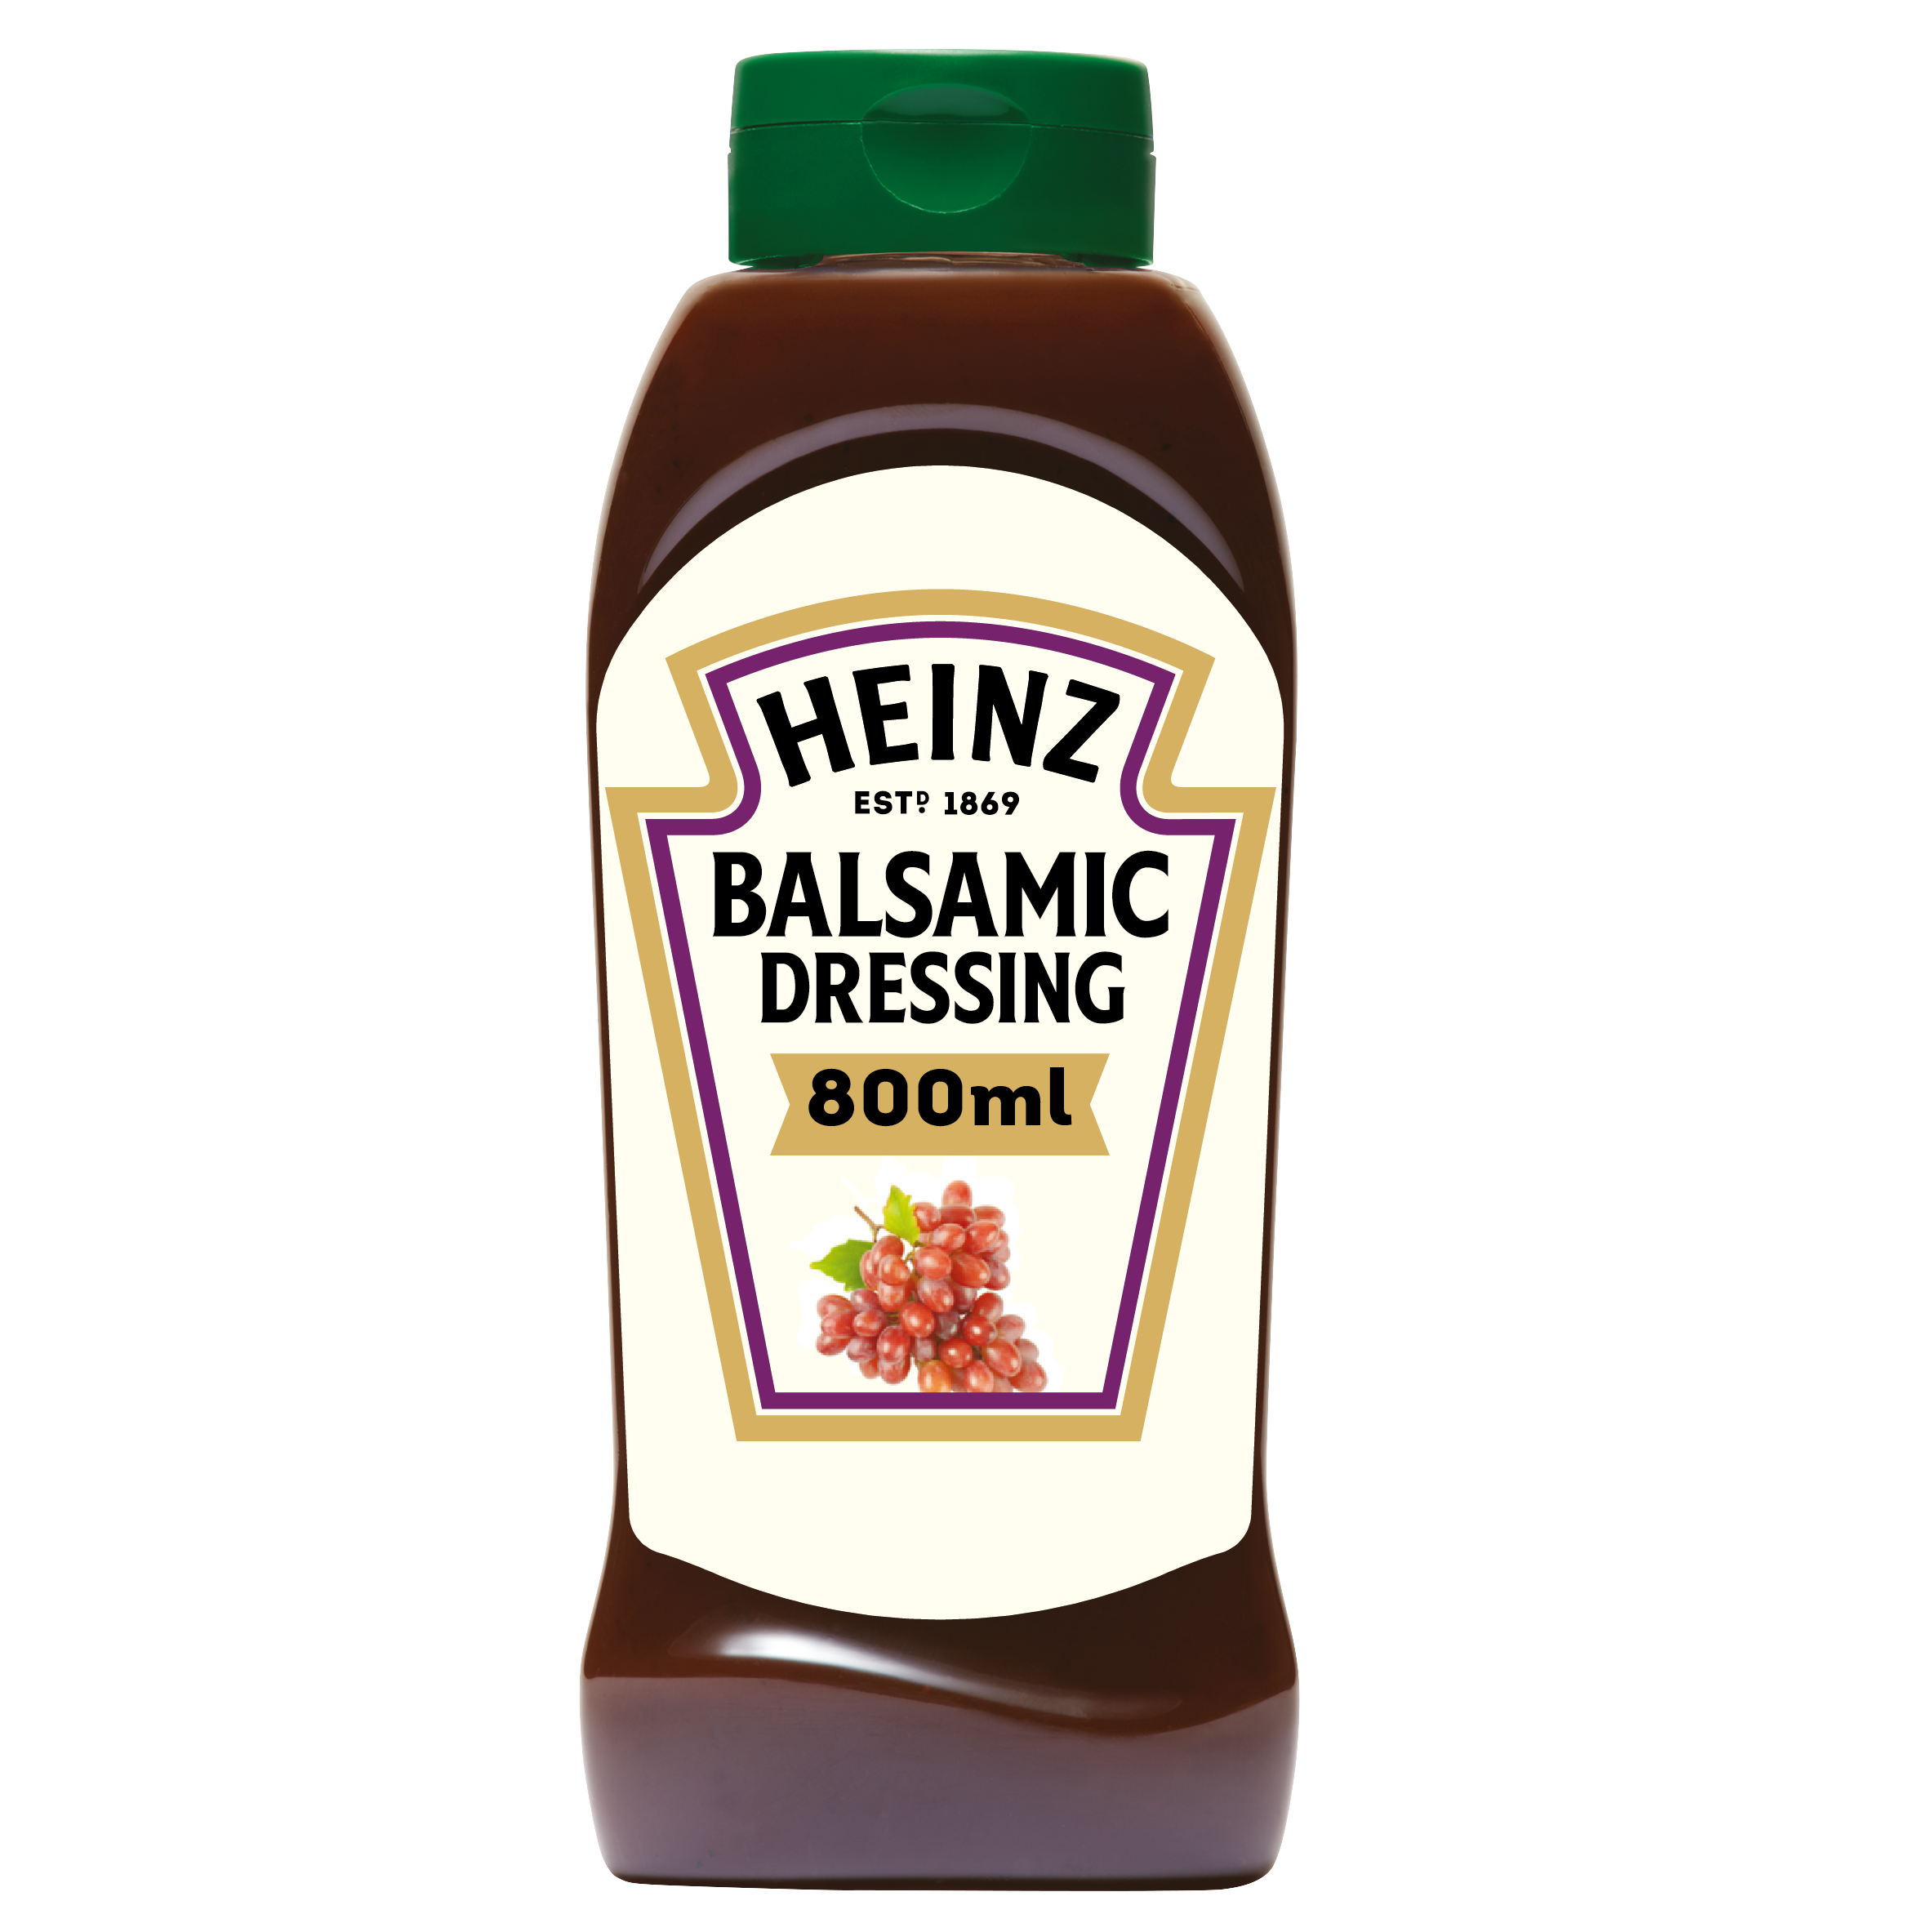 Heinz balsamic dressing800ml image